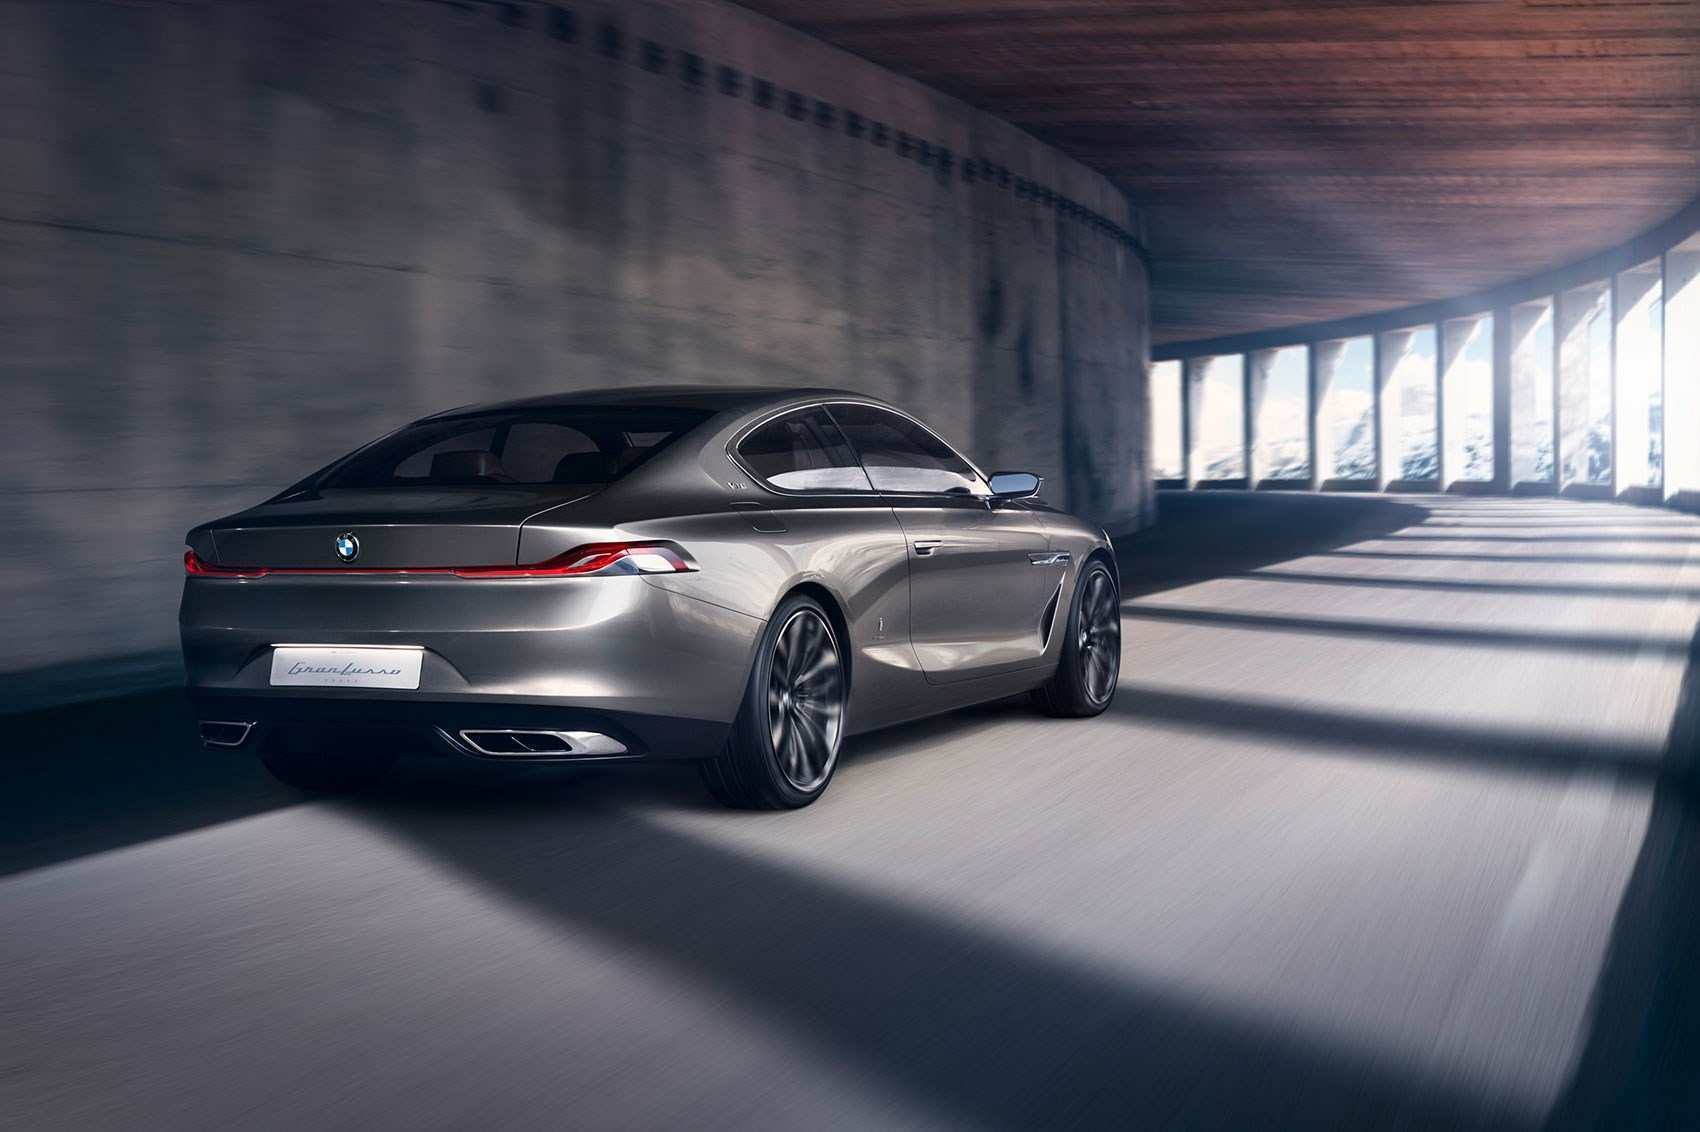 37 All New 2020 Bmw 9 Serisi Overview for 2020 Bmw 9 Serisi